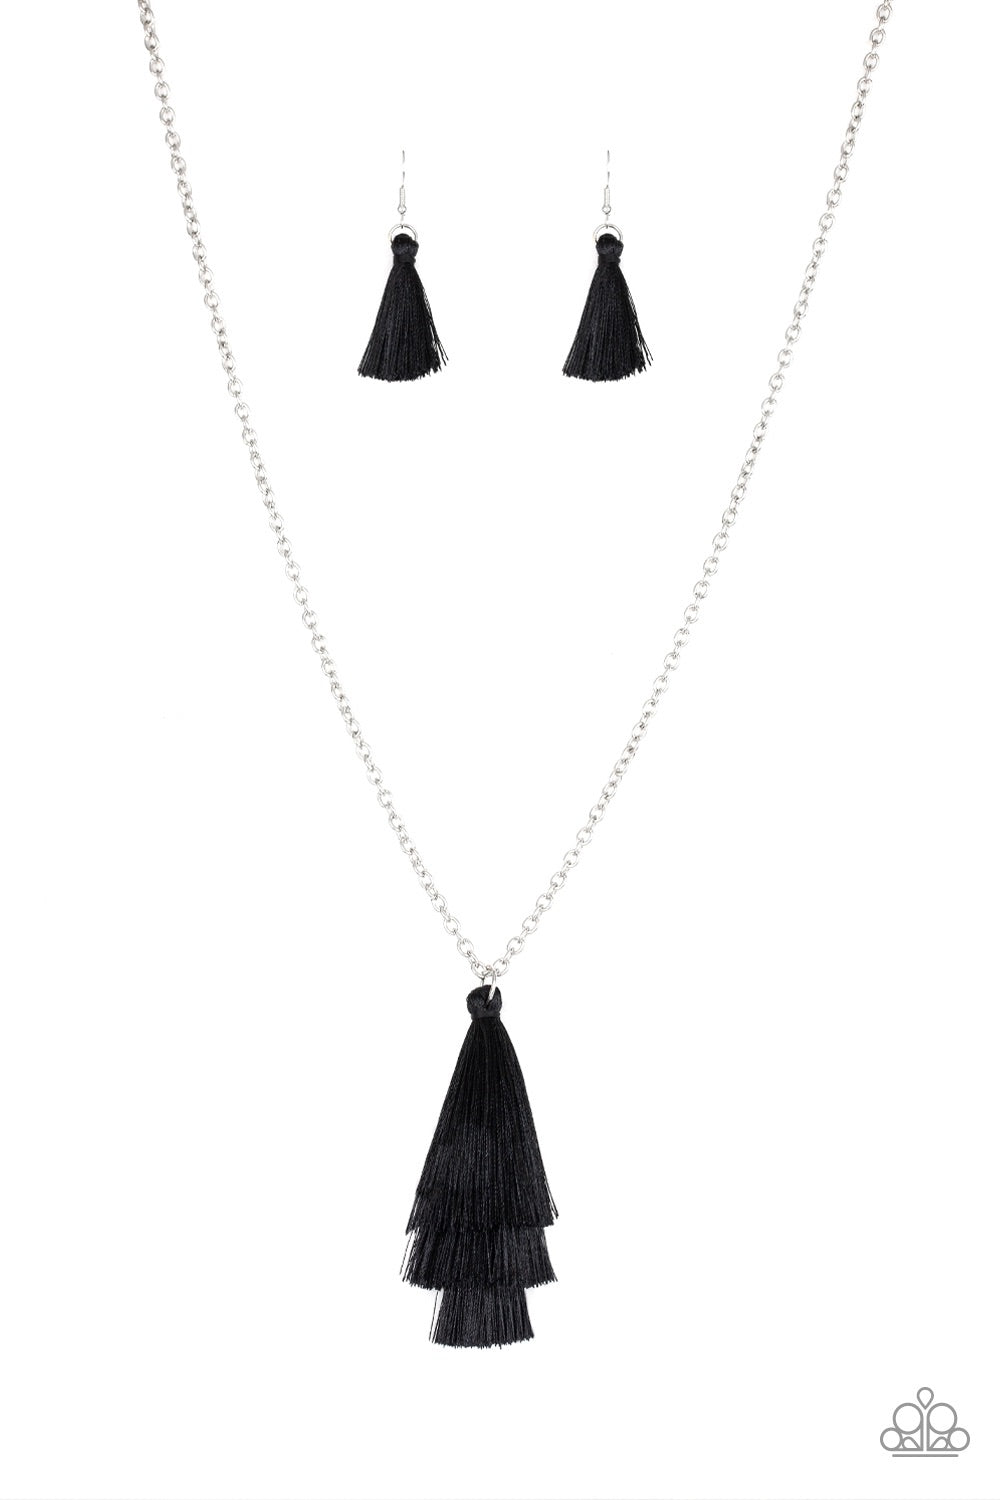 Triple the Tassel Black